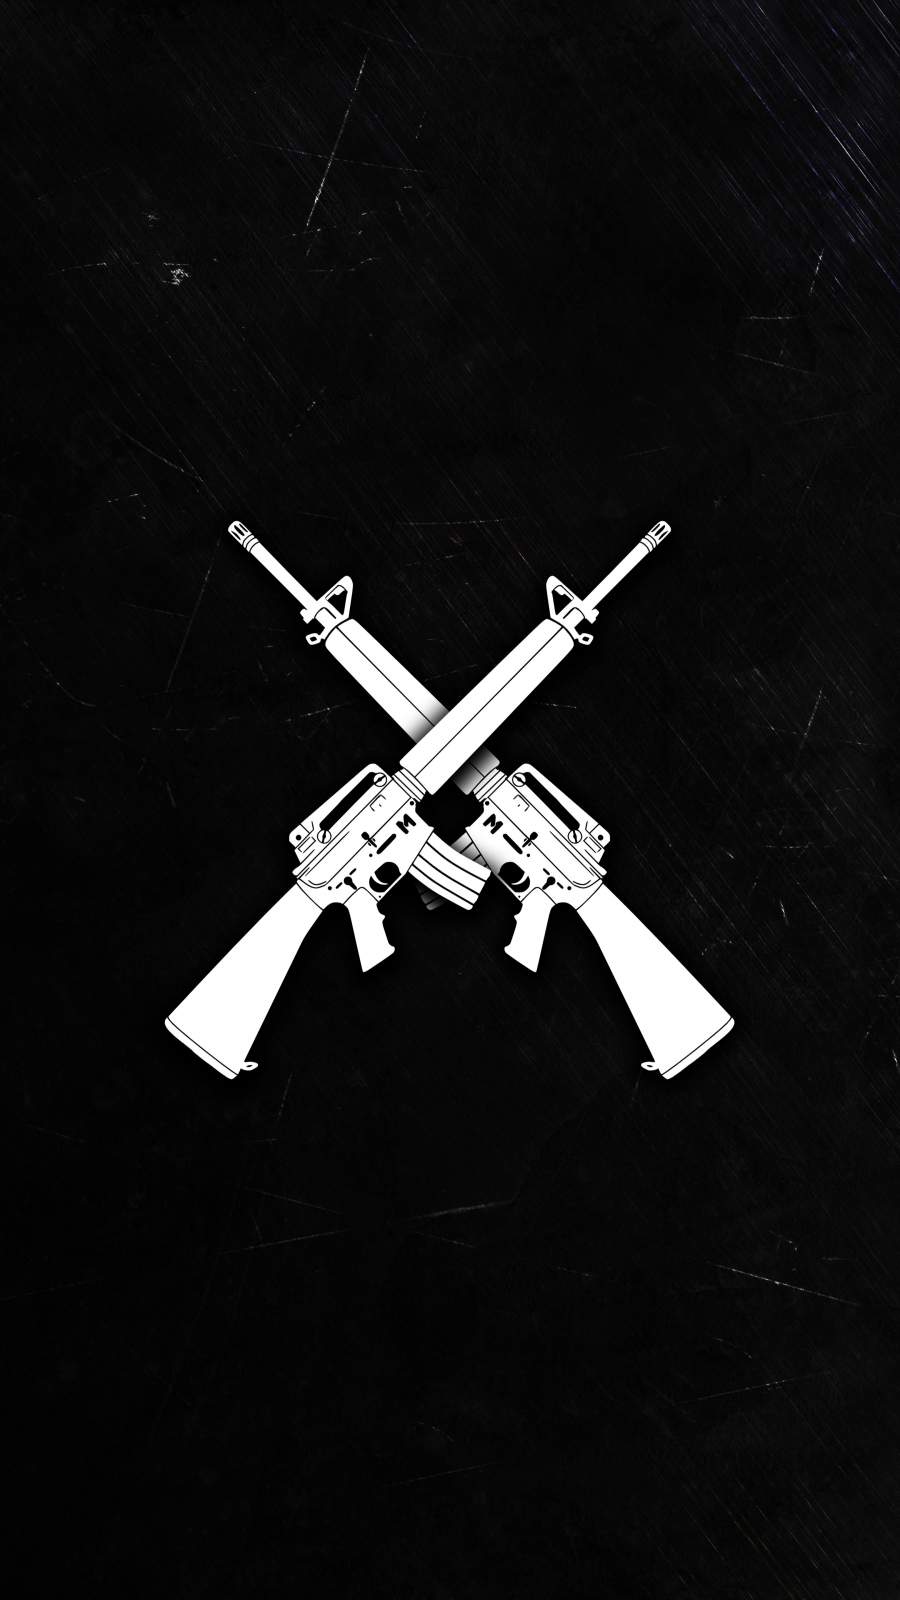 M16 Rifle iPhone Wallpaper